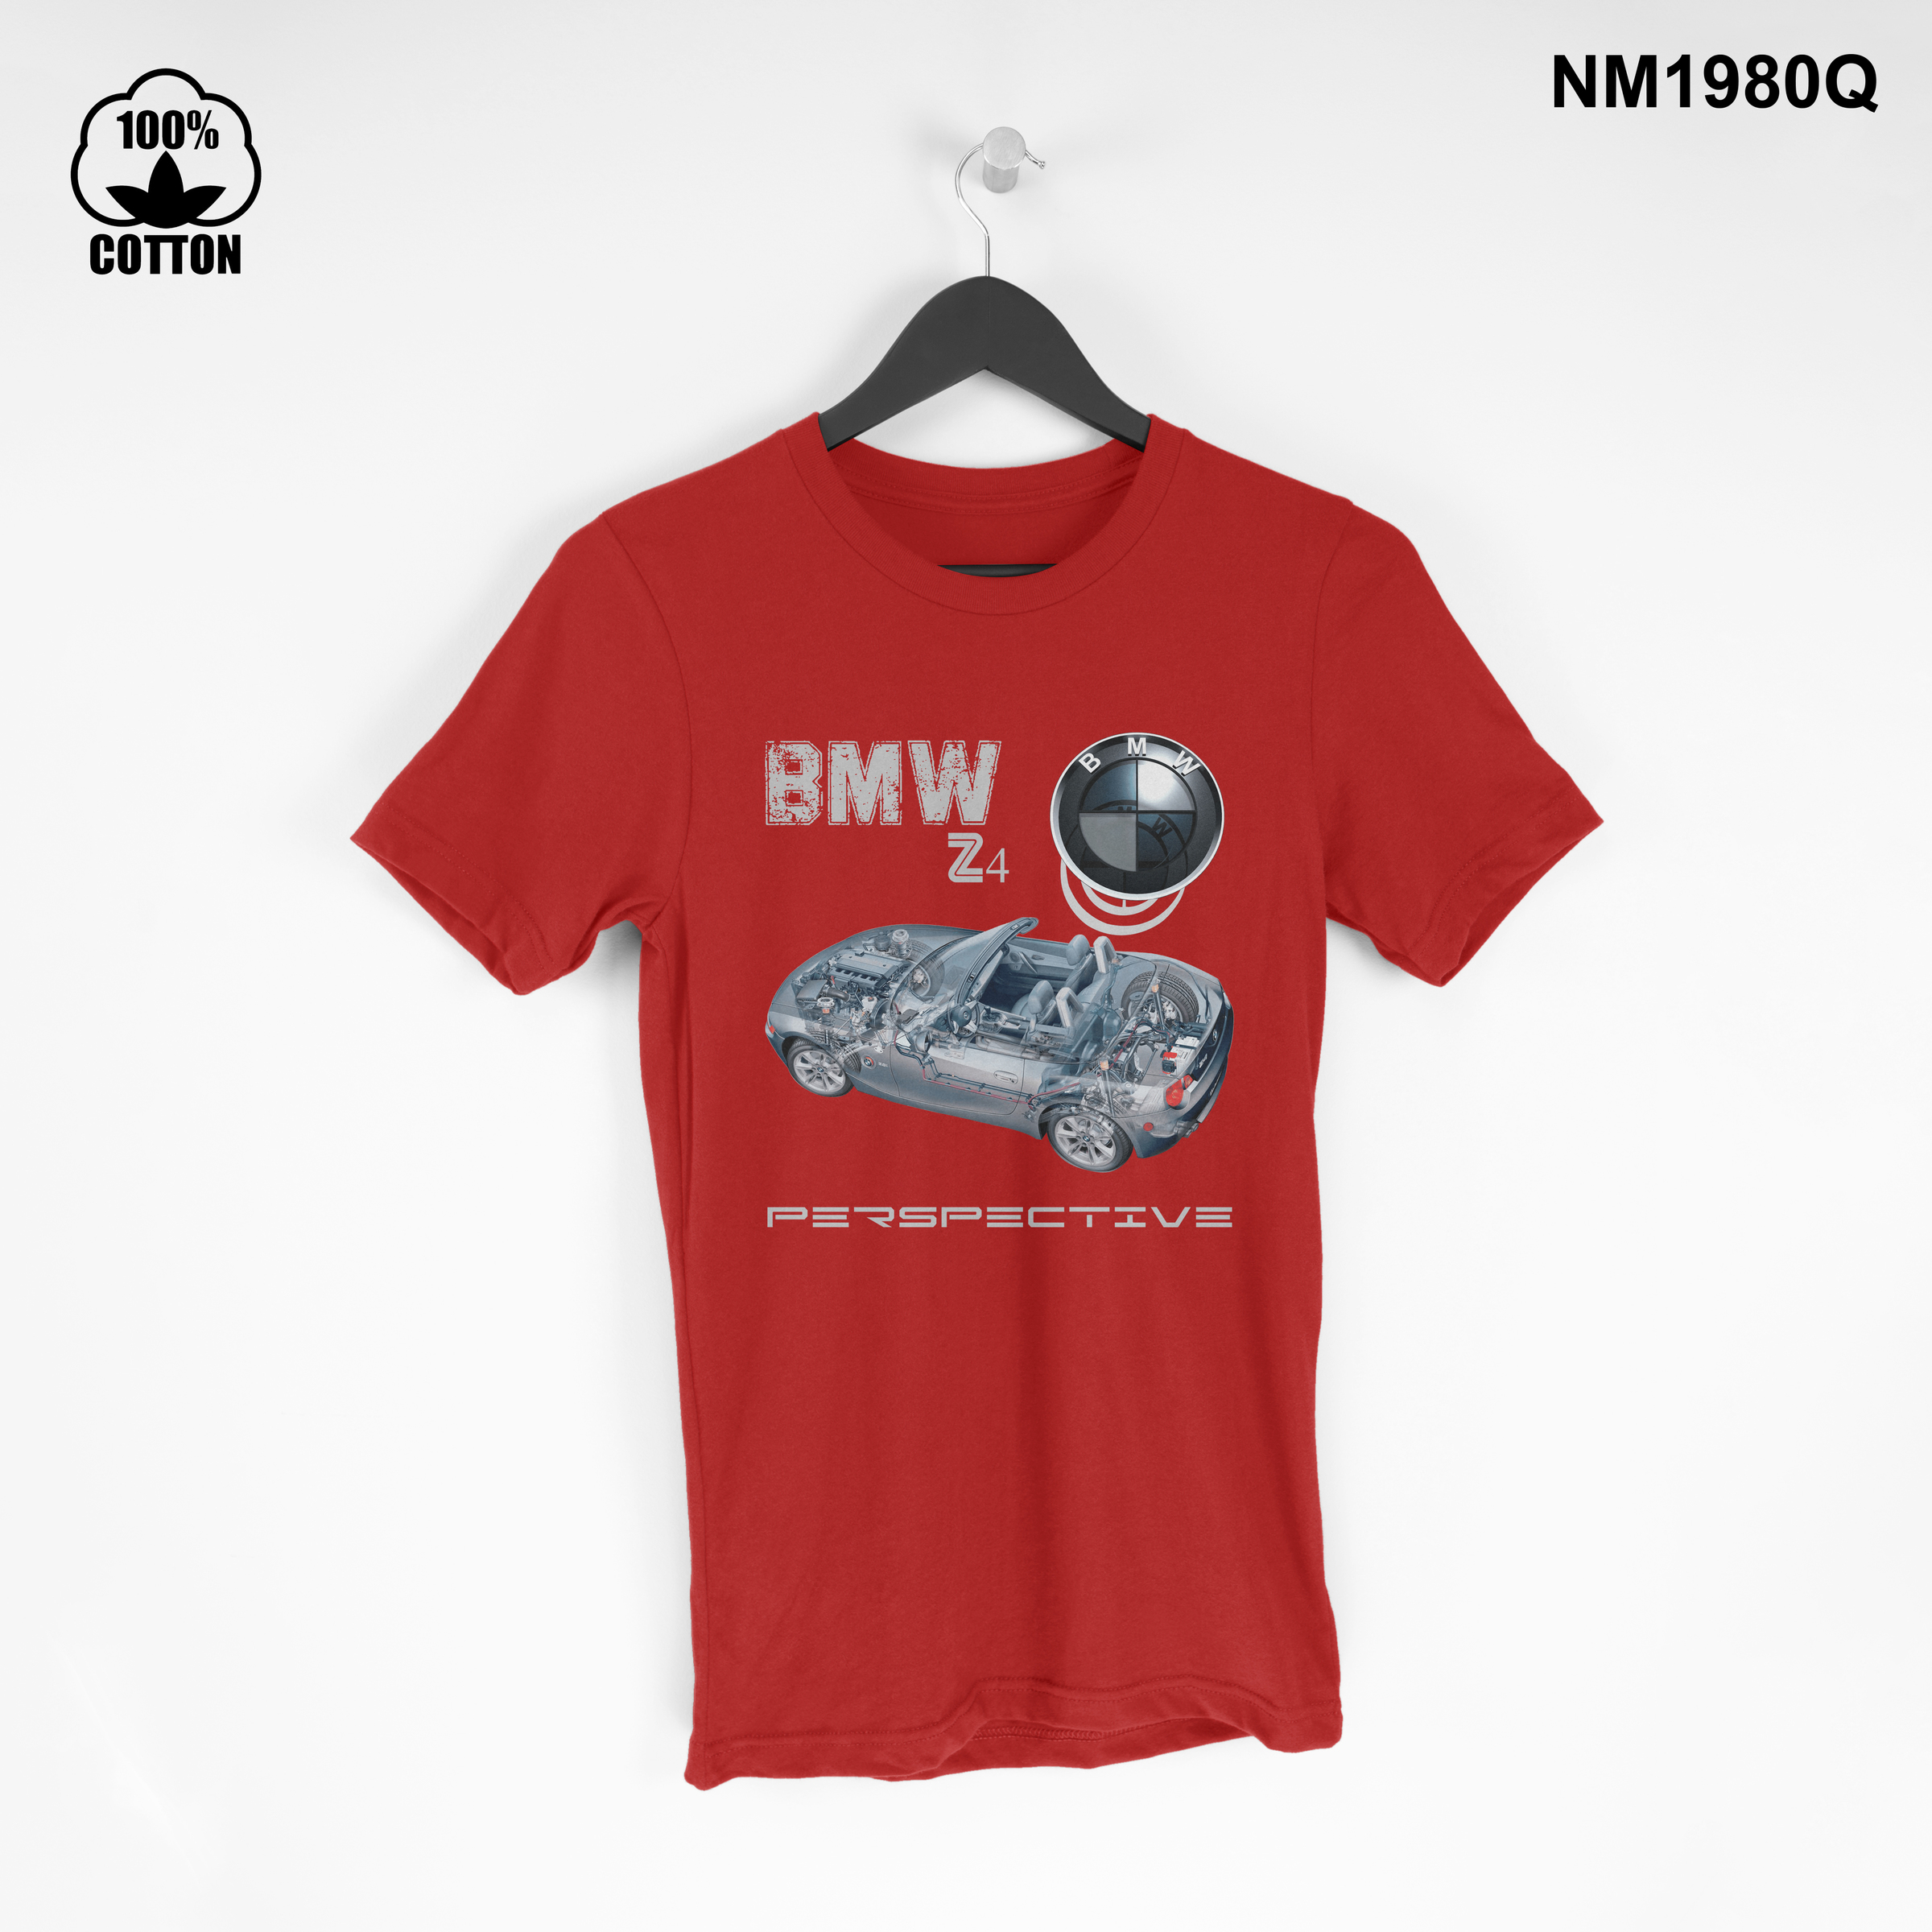 1.49 New Design T Shirt Tee BMW Z4 Car Mini coupe perspective Short Sleeve mens Clothing red.jpg